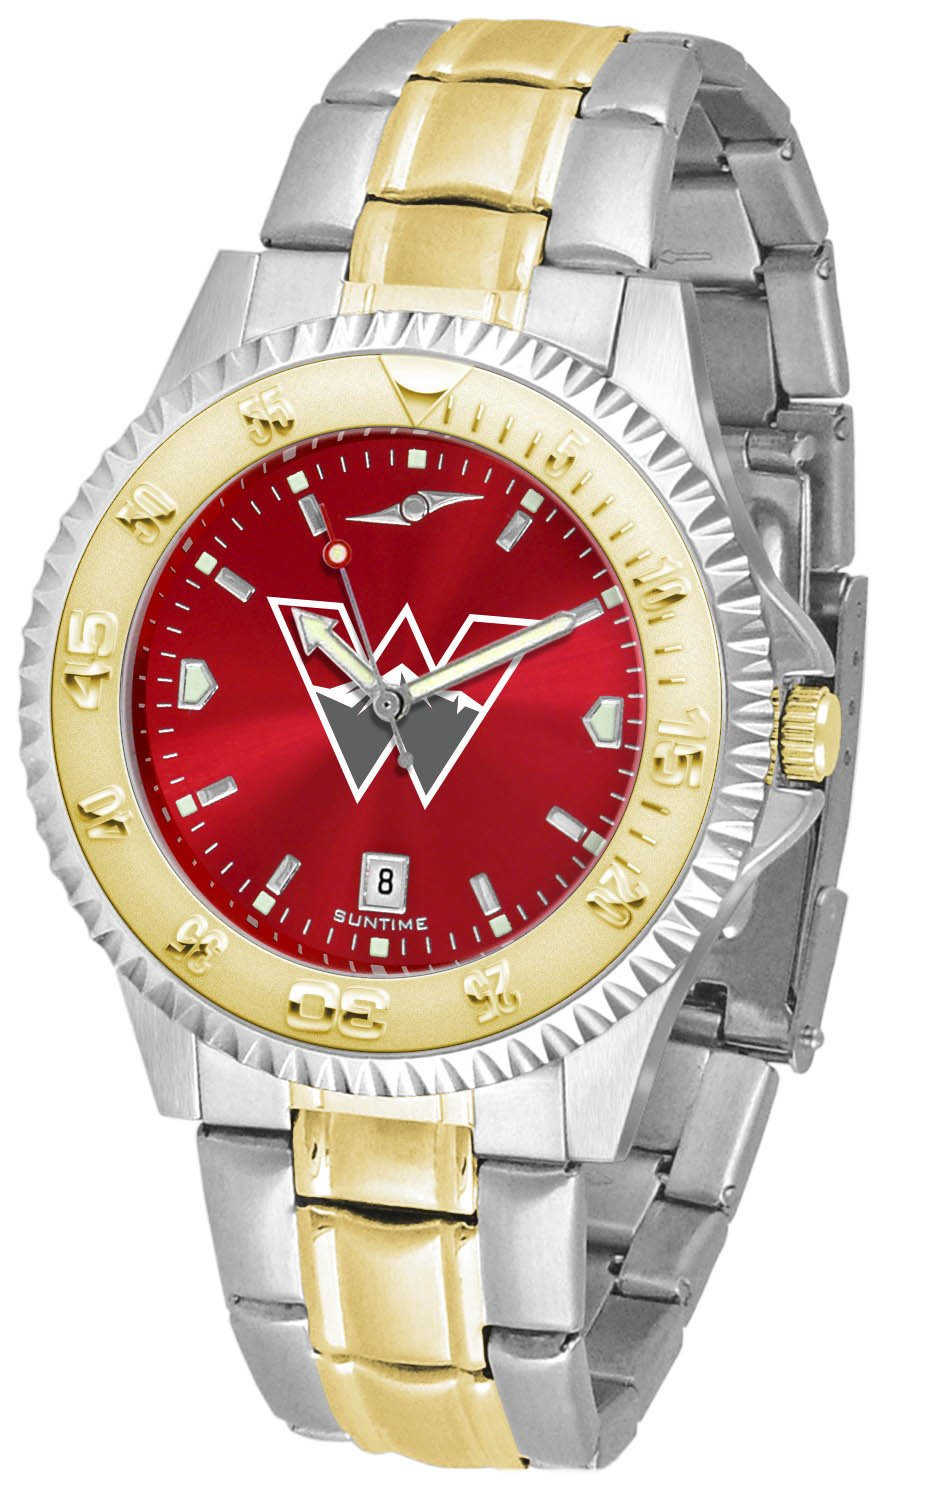 Western State Colorado University Mountaineers-Competitor Two-Tone AnoChrome by SUNTIME